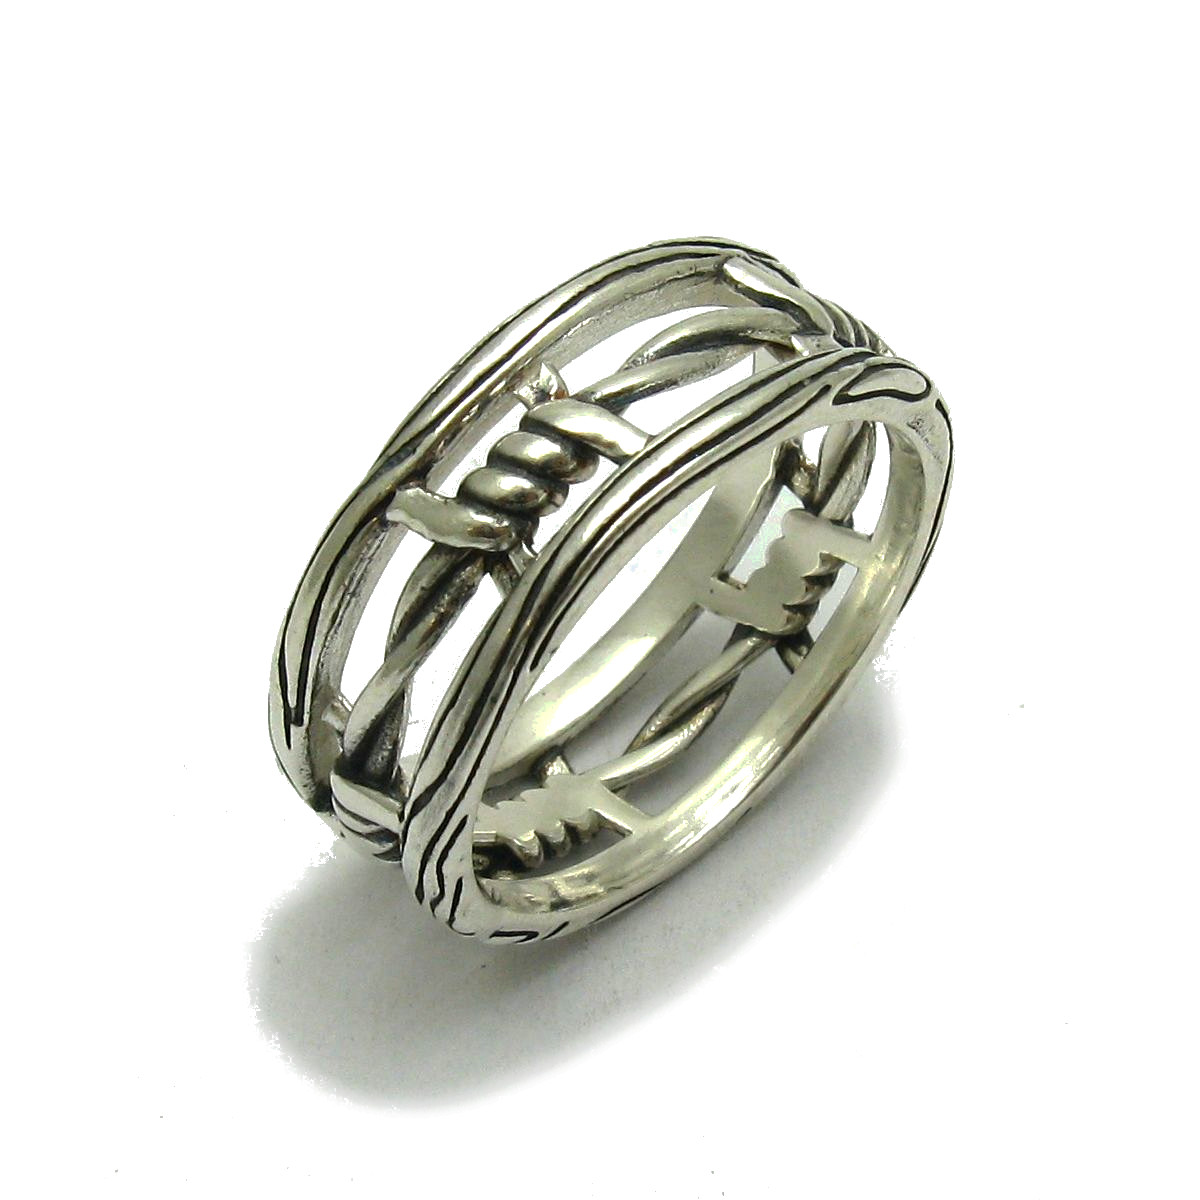 Silver ring - R001736